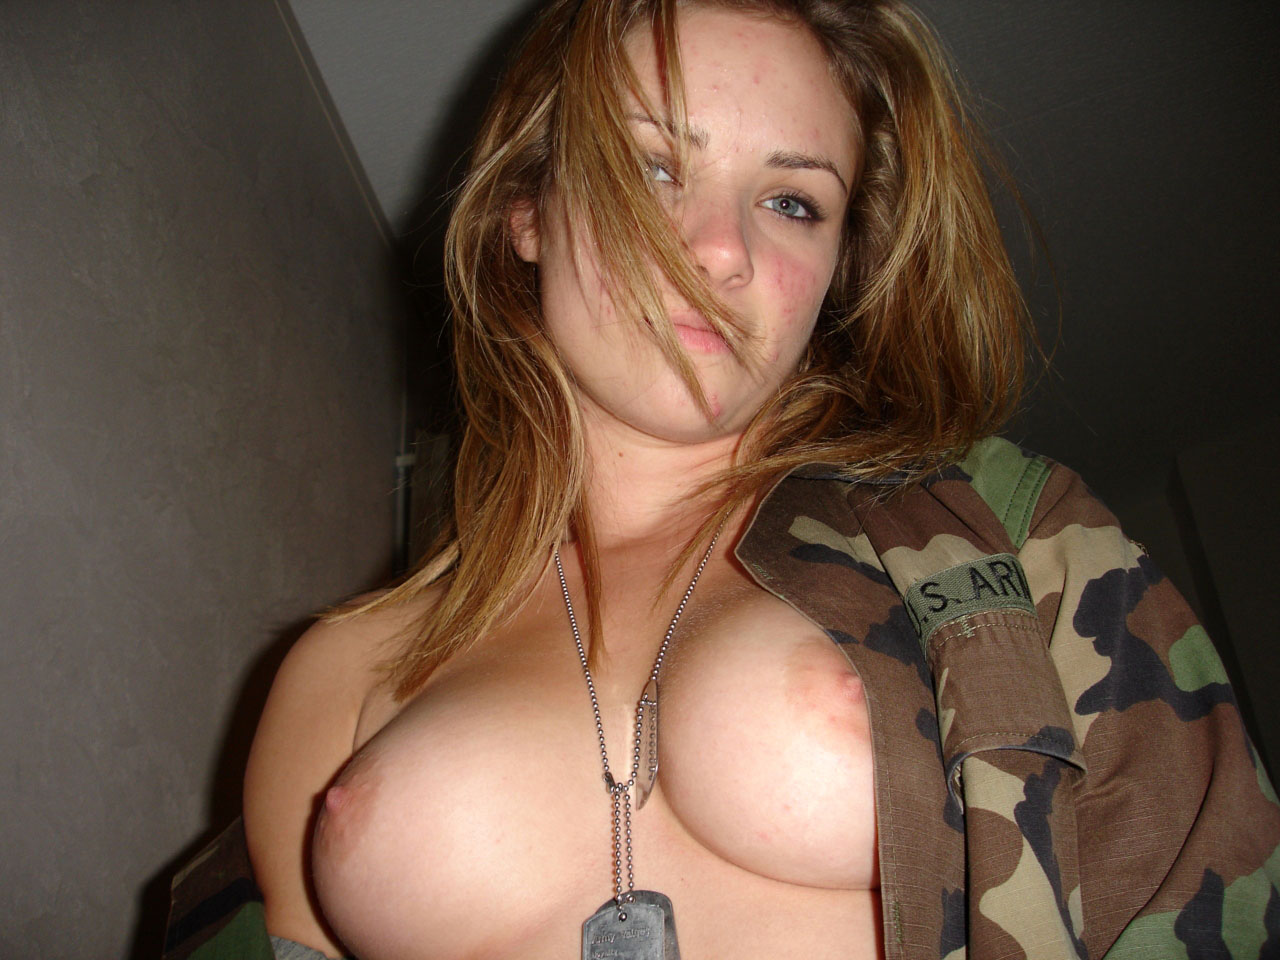 Free download naked boobs army girl wallpapers fucks tit